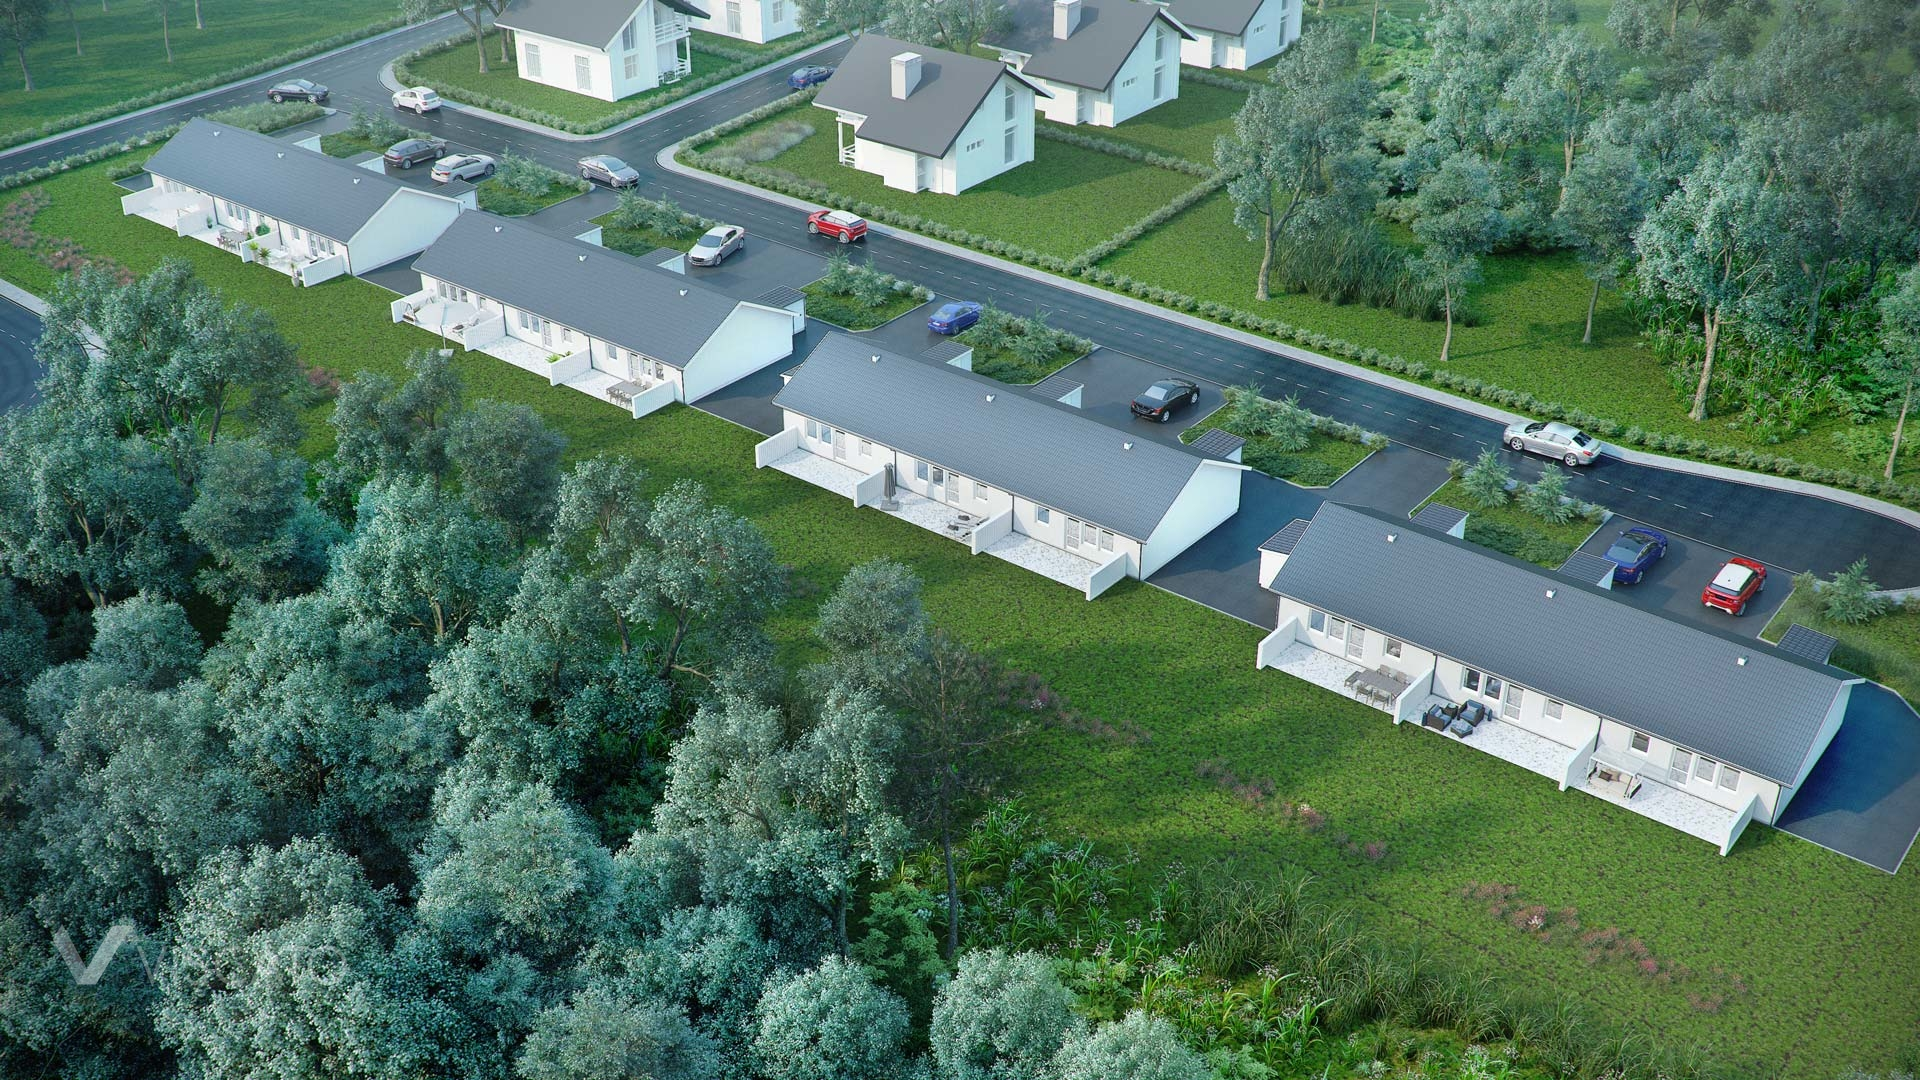 3d Exterior Visualization of settlement in Knislinge, Sweden- aerial view from garden side